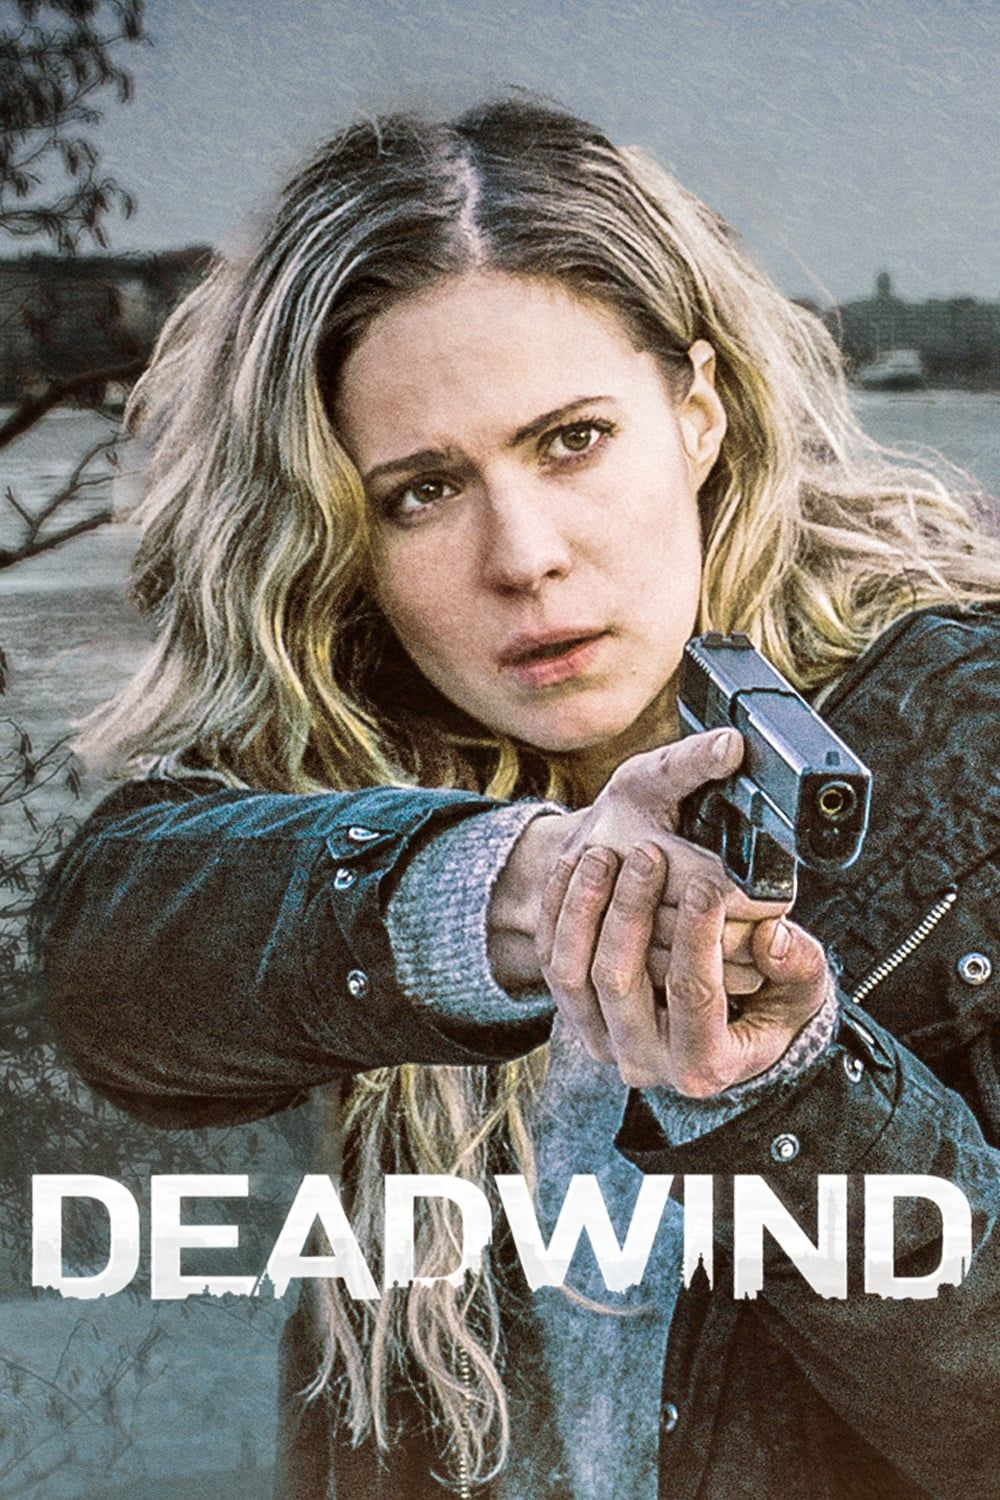 Assistir Deadwind Online Gratis Hd 720p Dublado E Legendado Tv